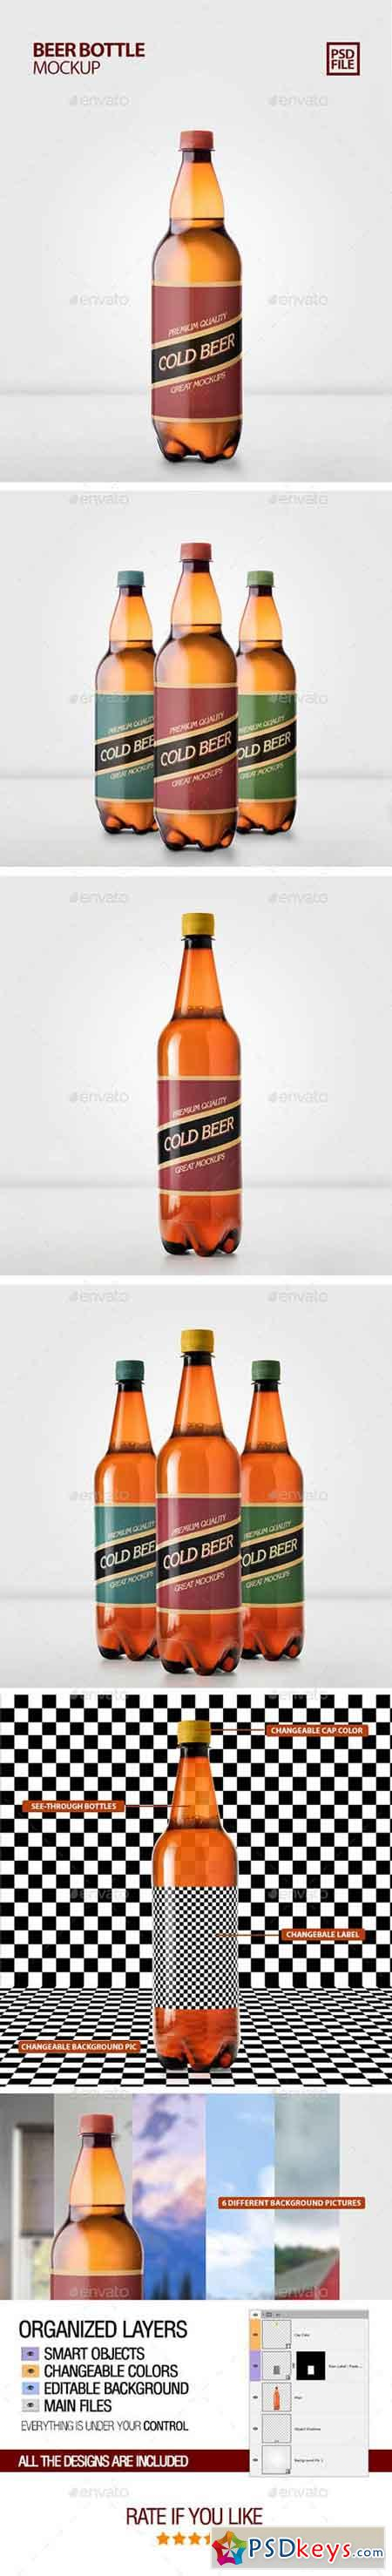 Beer Bottle Mockup 22120721